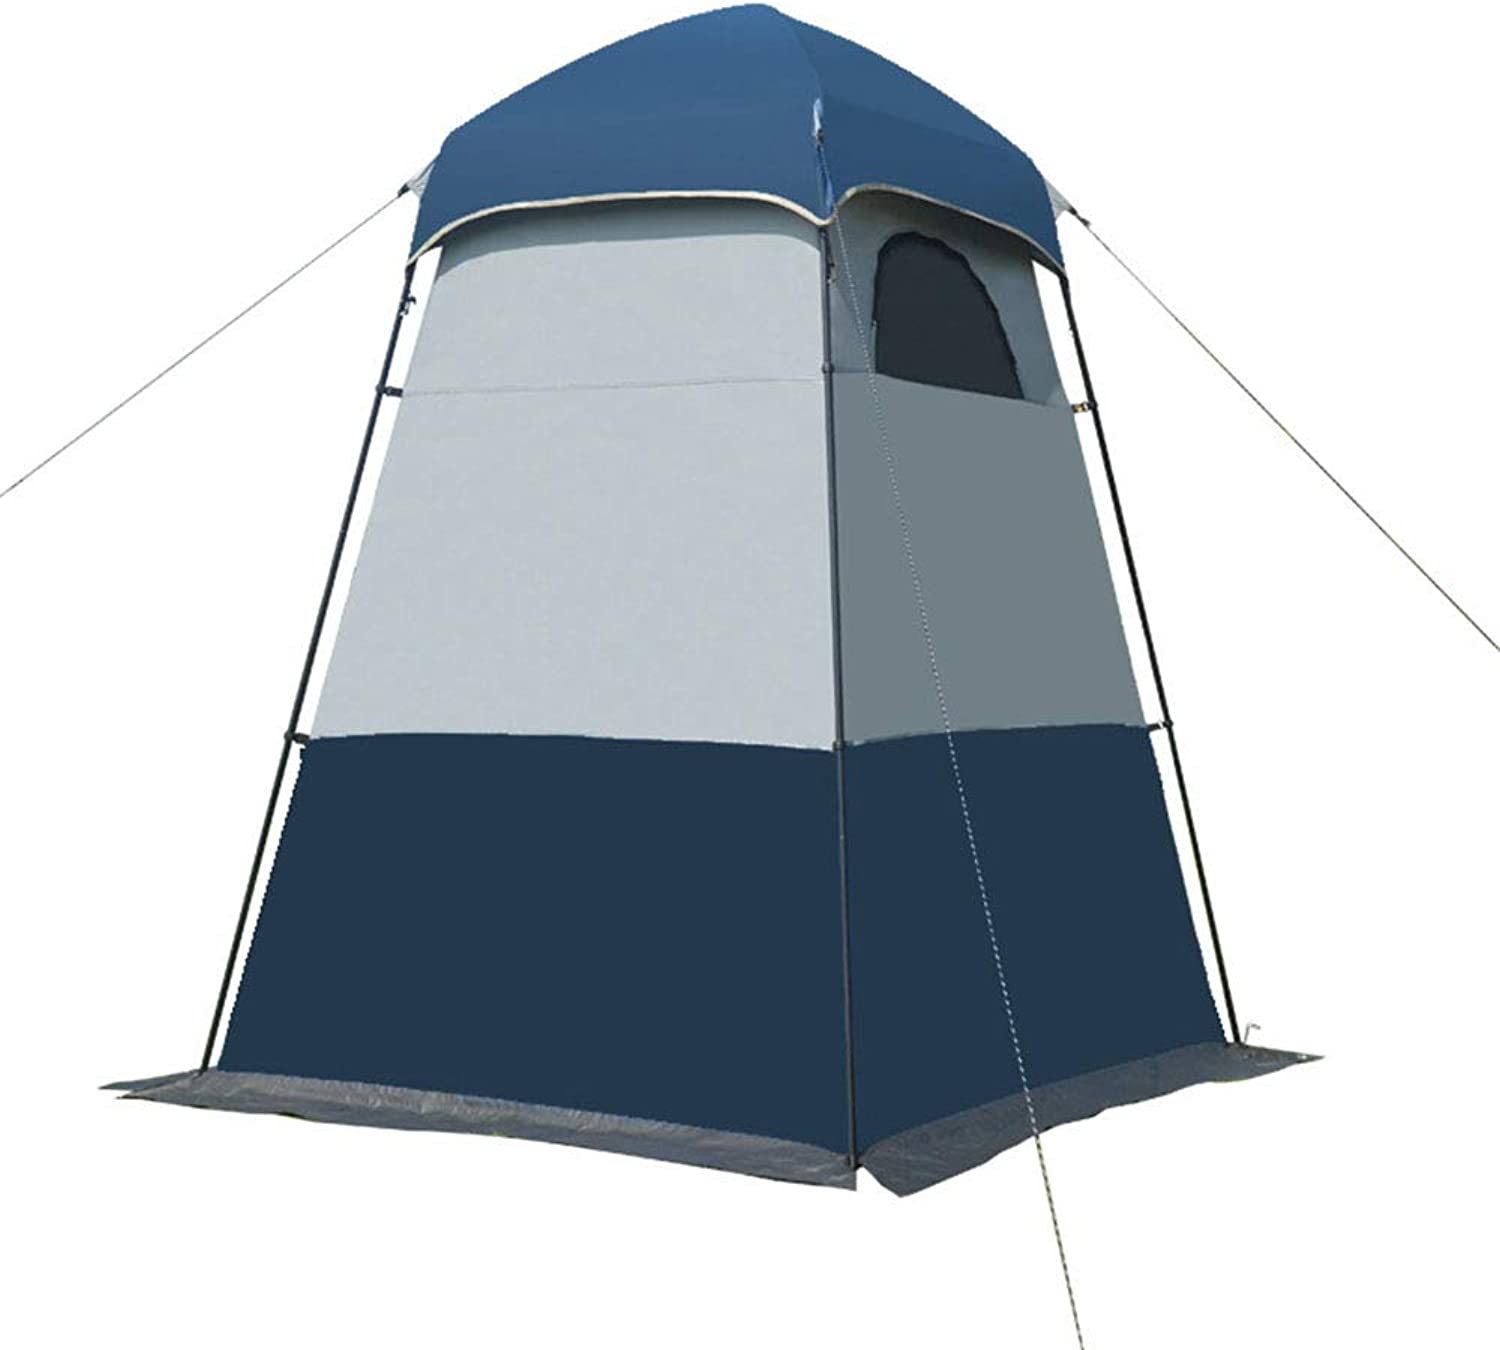 Outdoor Bathing Tent Rainproof Sunscreen Camping Beach Fishing Tent Model Changing Clothes Field Mobile WC